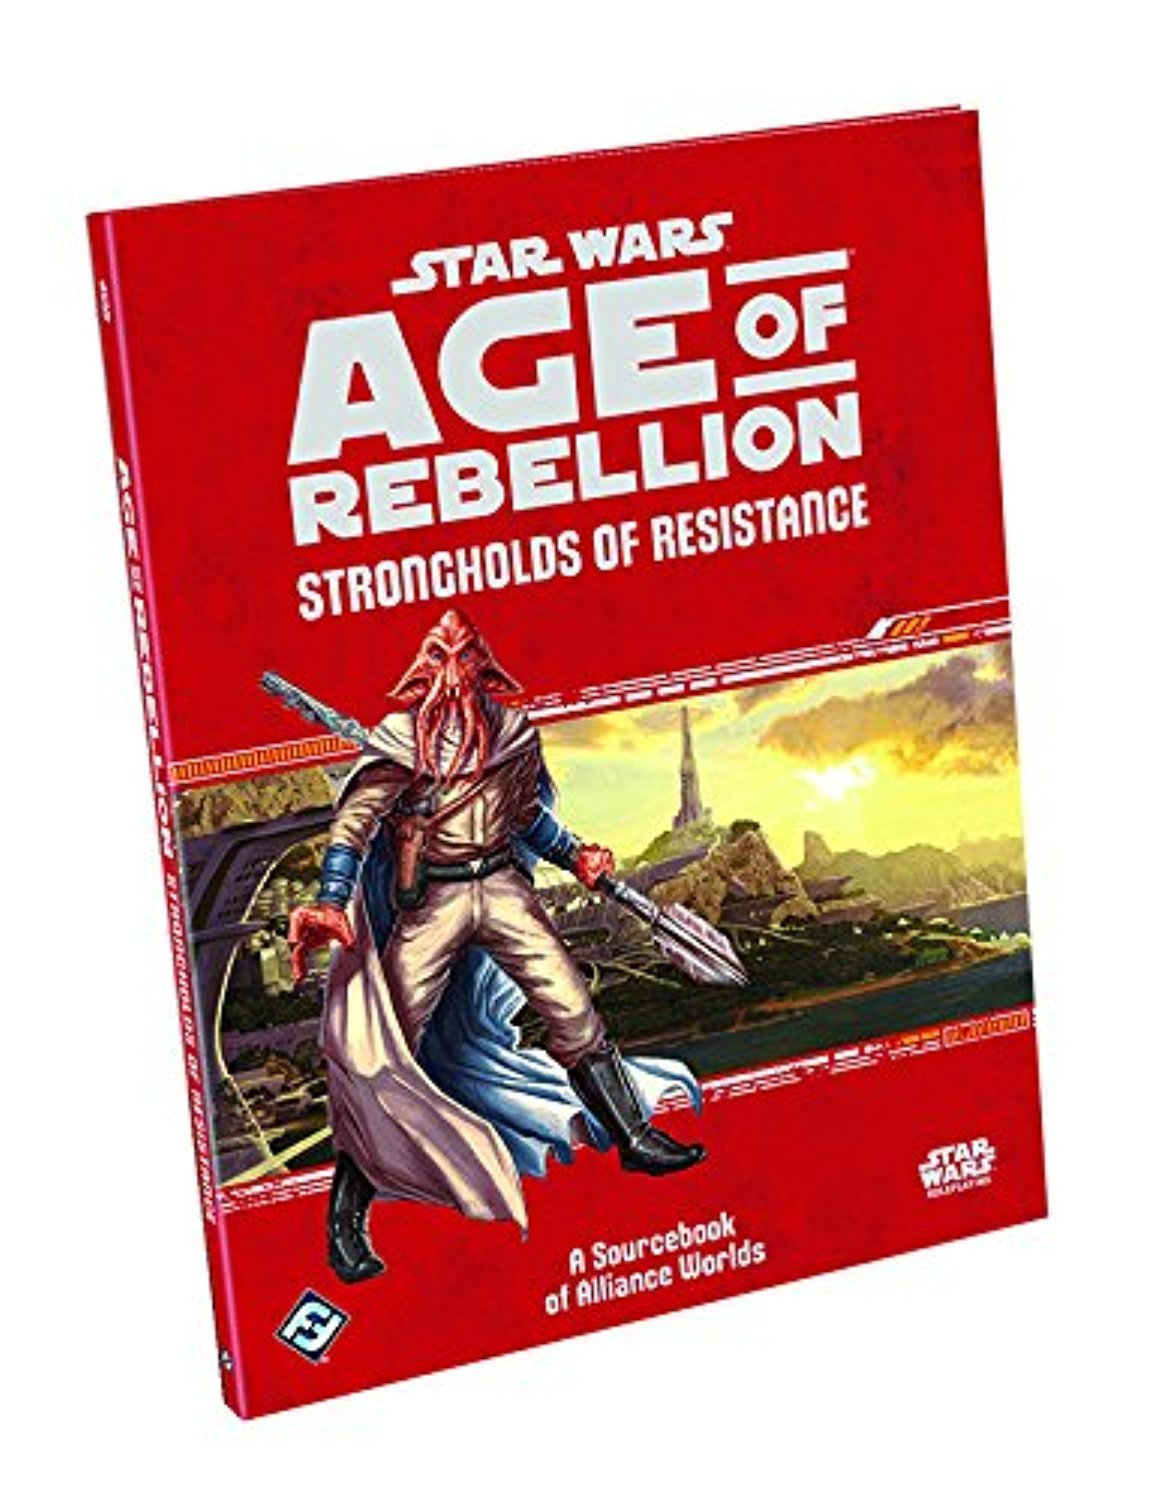 Star Wars Age of Rebellion: Strongholds of Resistance Book